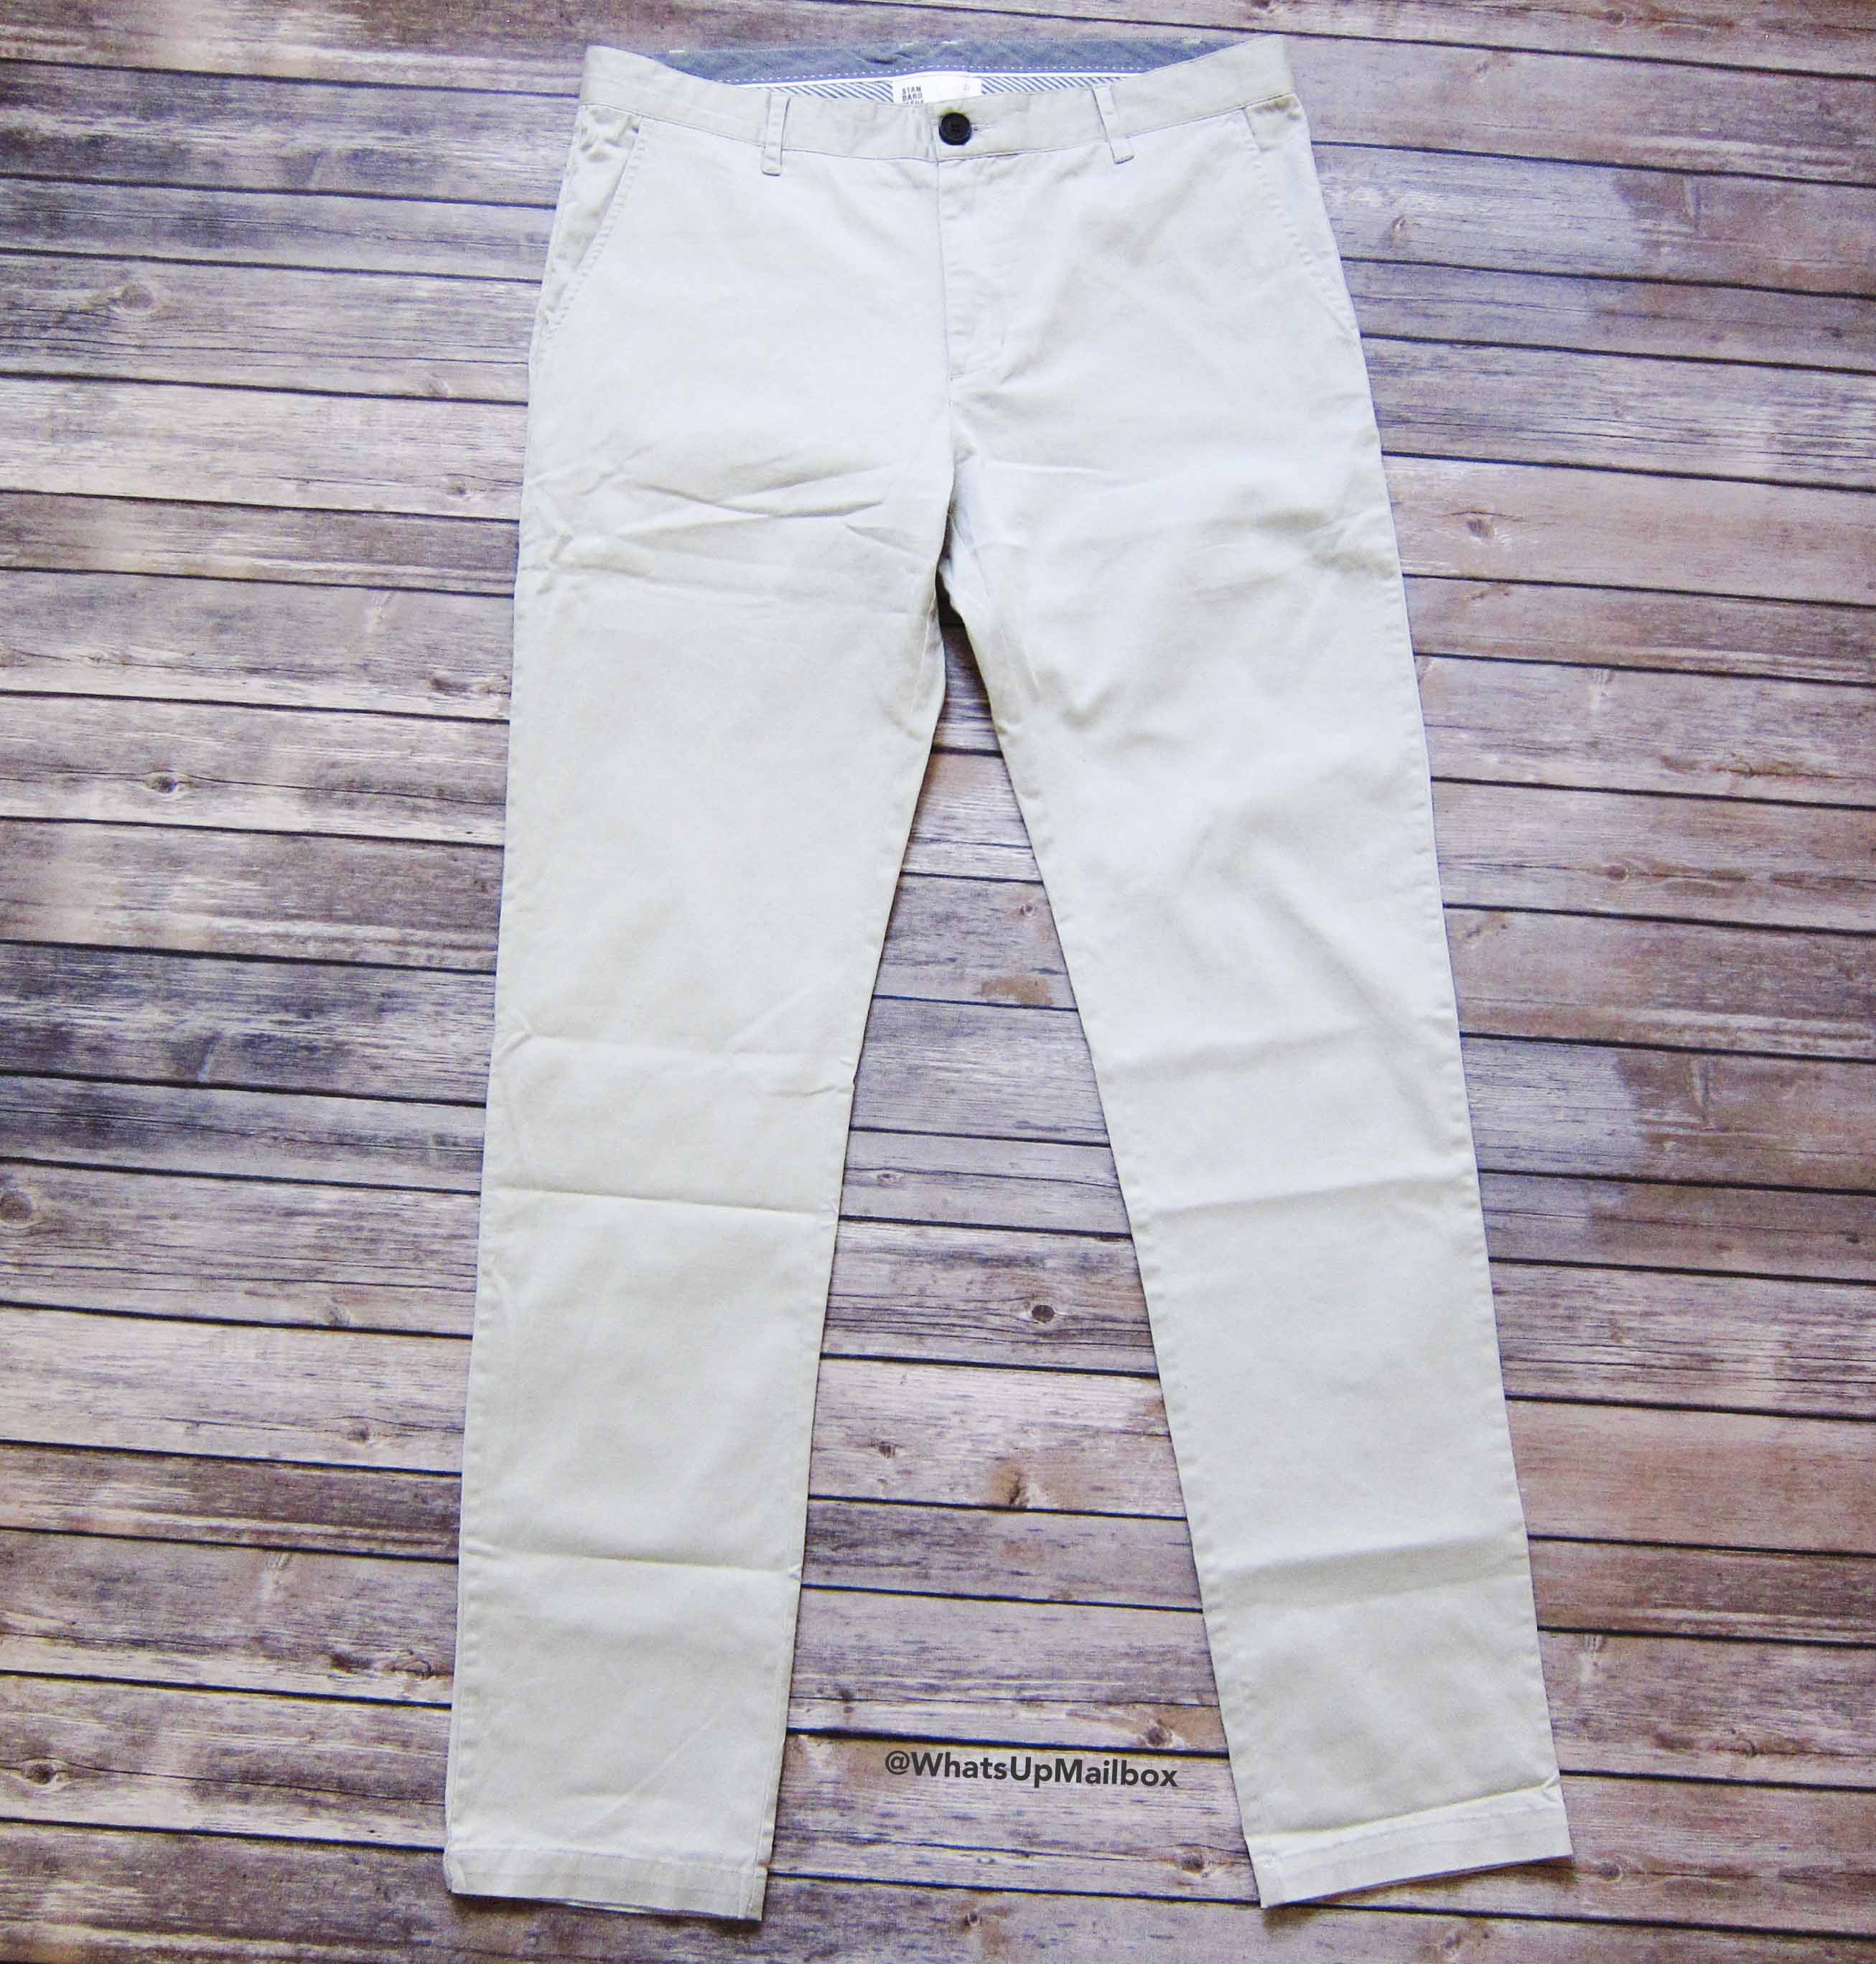 Trendy Butler - Standard Issue NYC Classic Khaki Pants